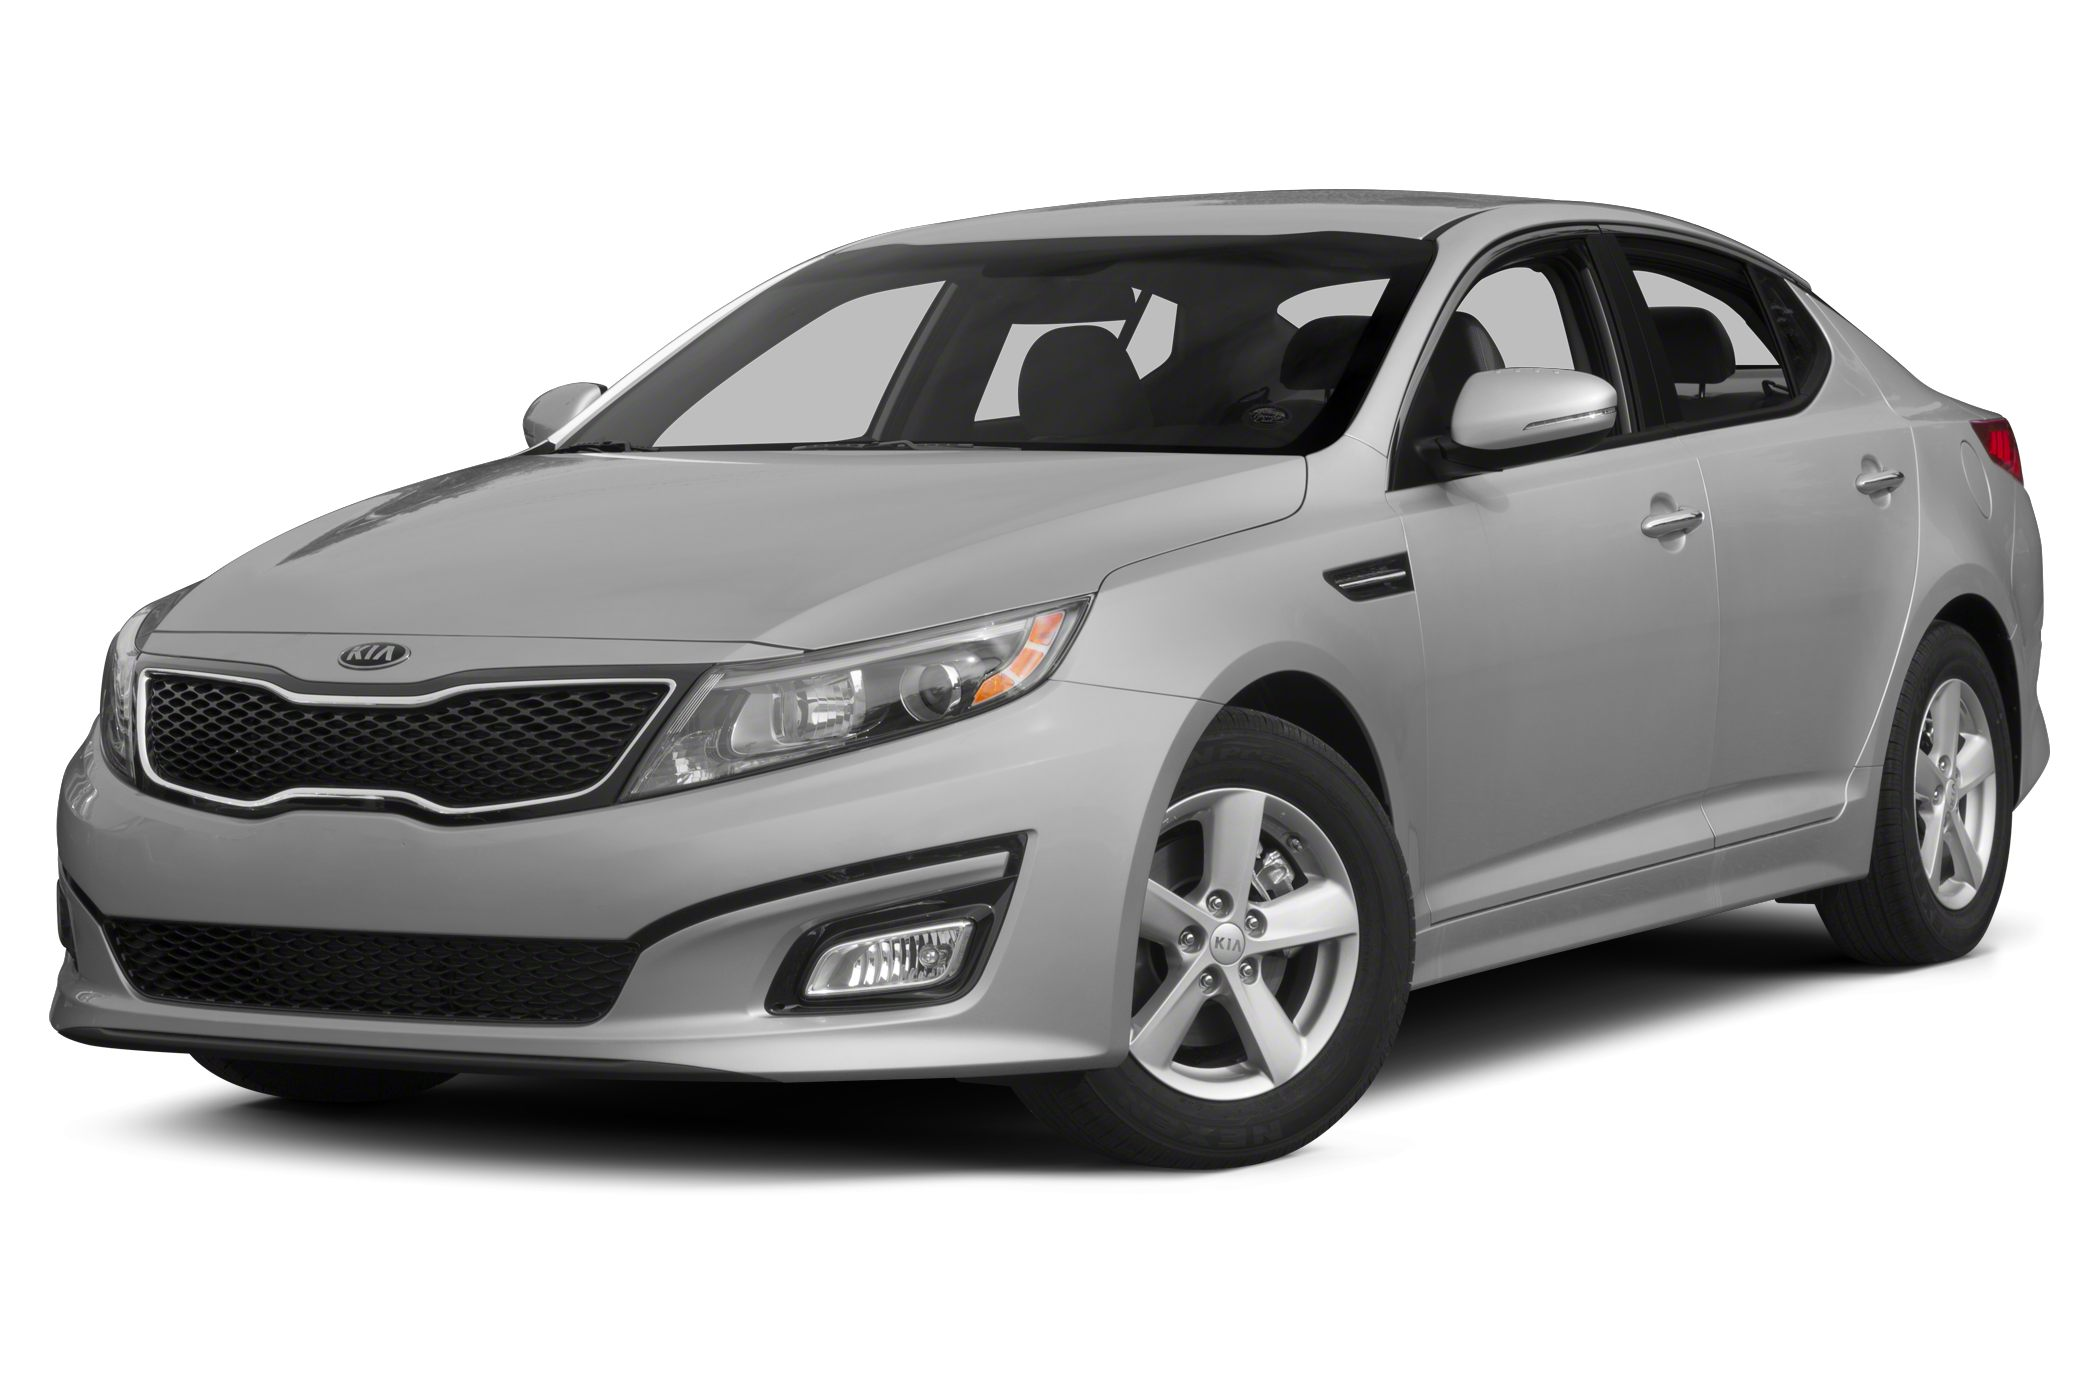 2015 Kia Optima EX Sedan for sale in Bedford for $24,874 with 15 miles.